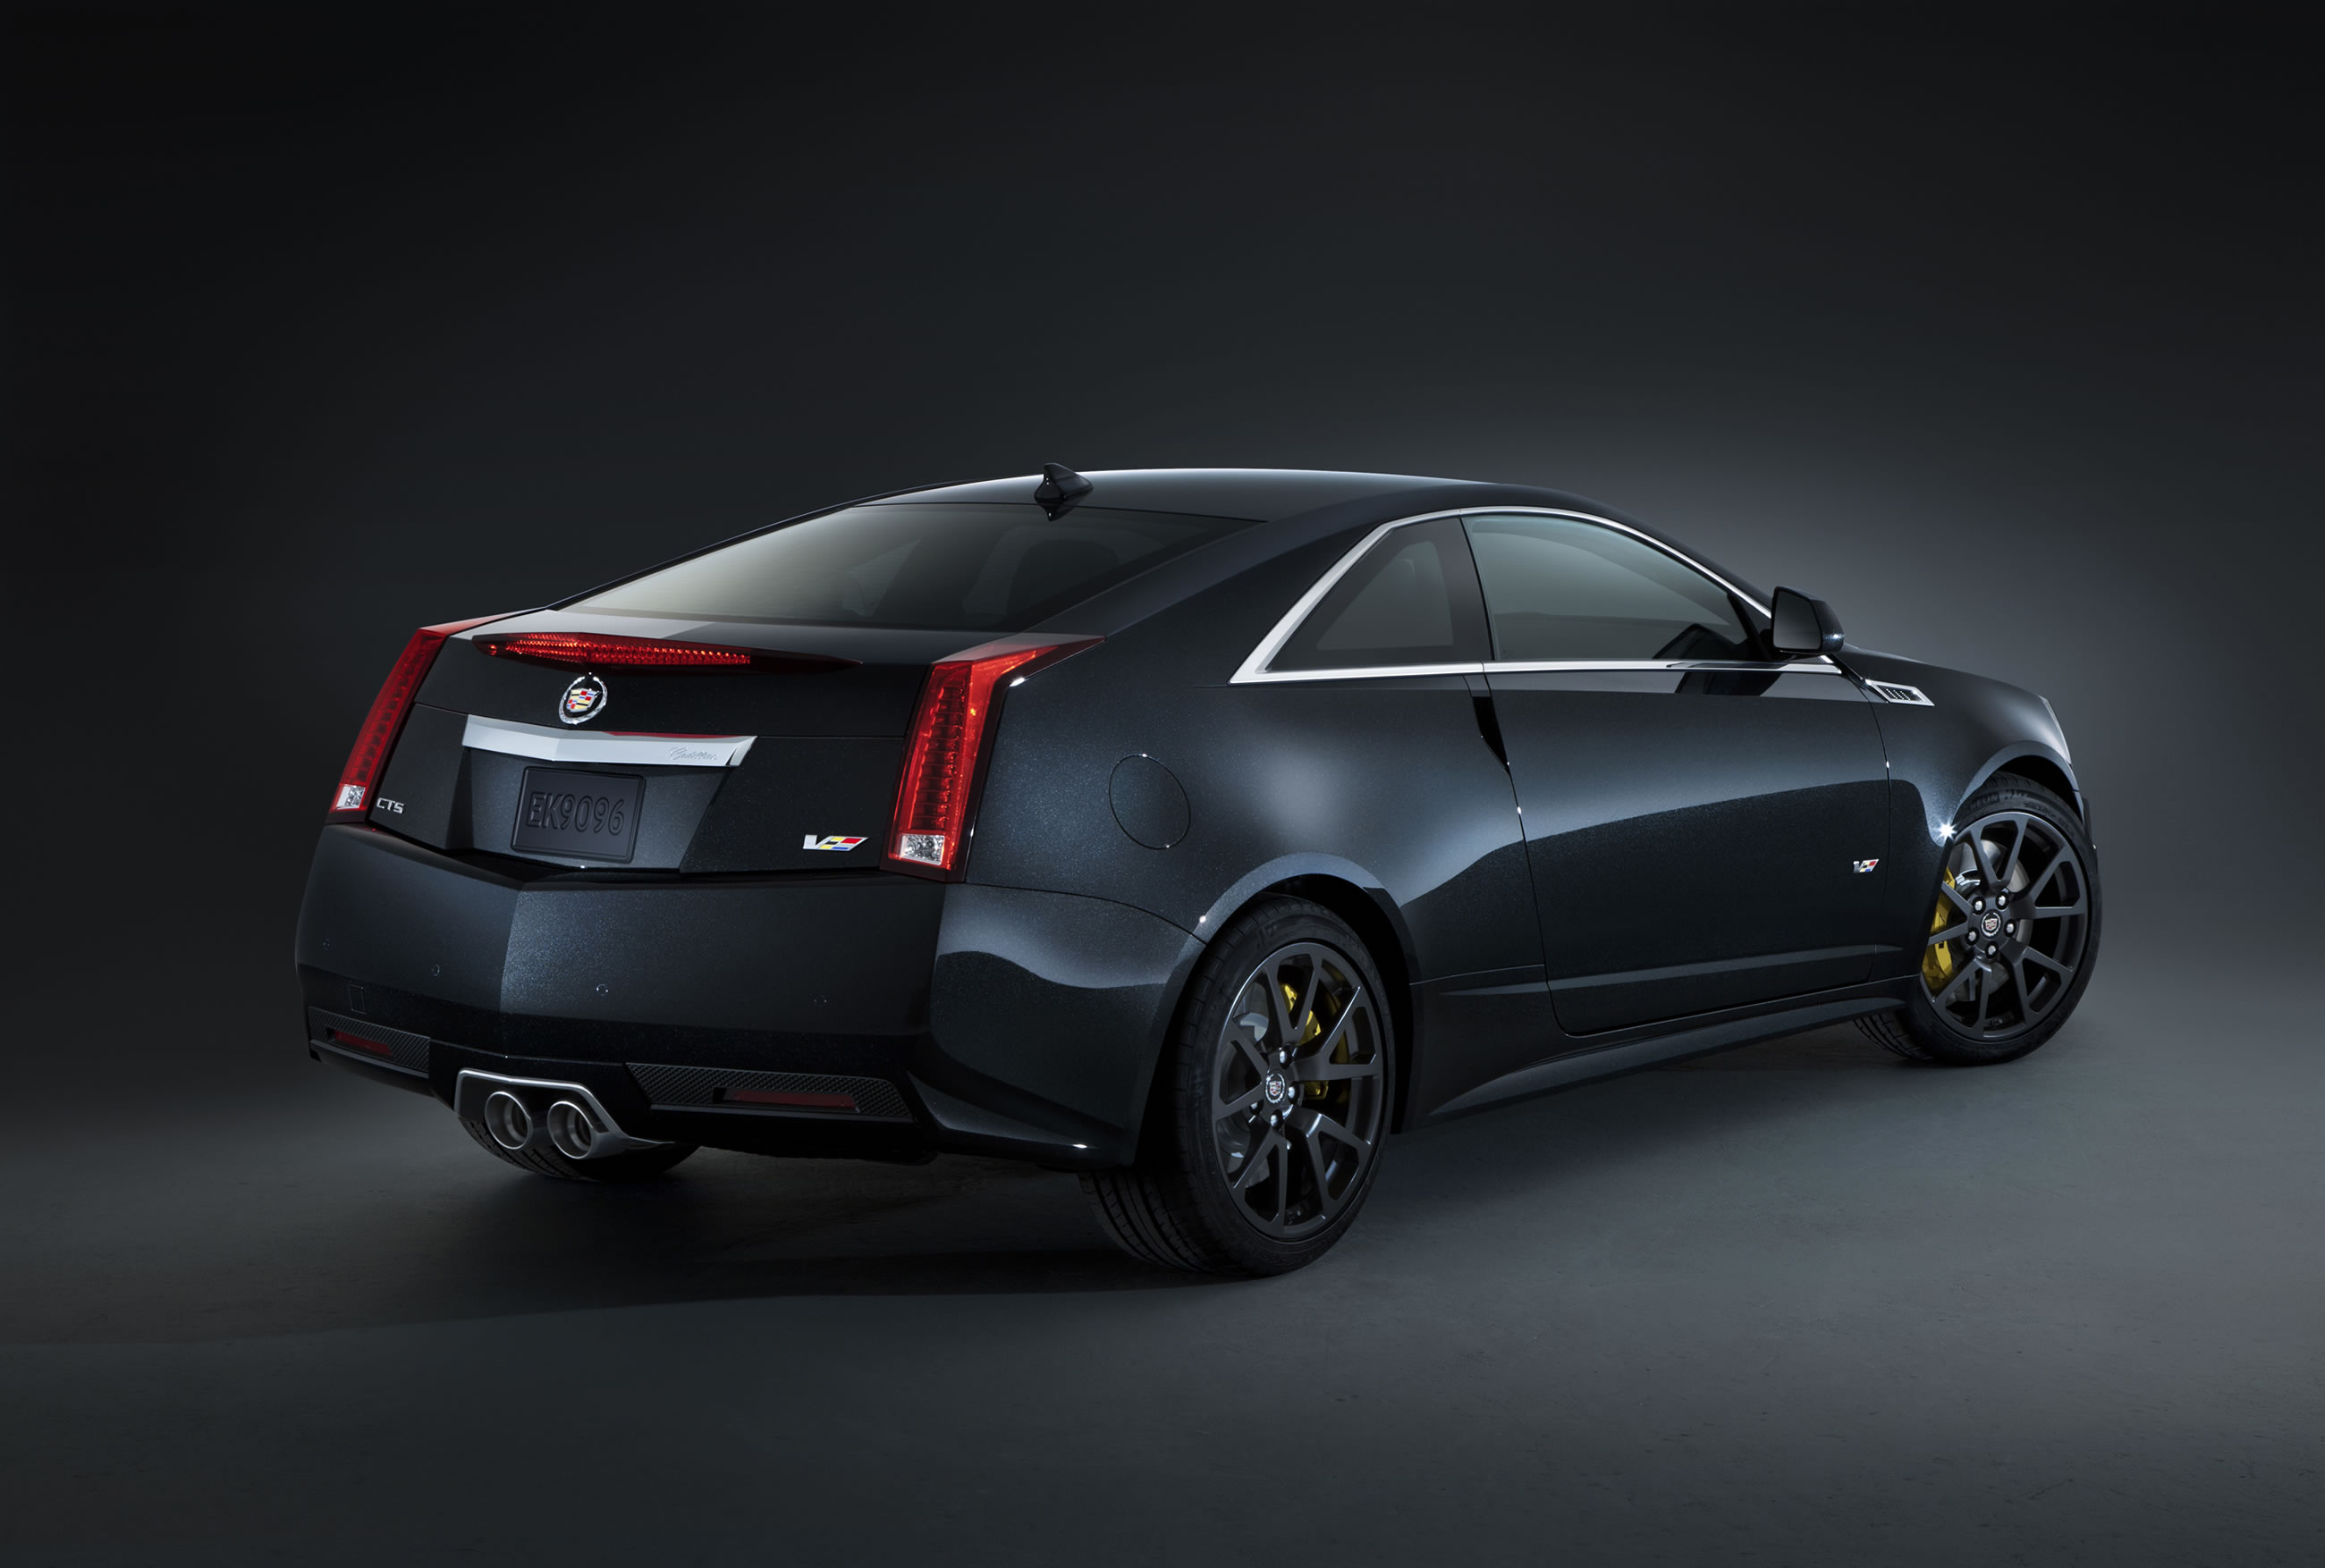 2014 cadillac cts v coupe photos specs and review rs. Black Bedroom Furniture Sets. Home Design Ideas